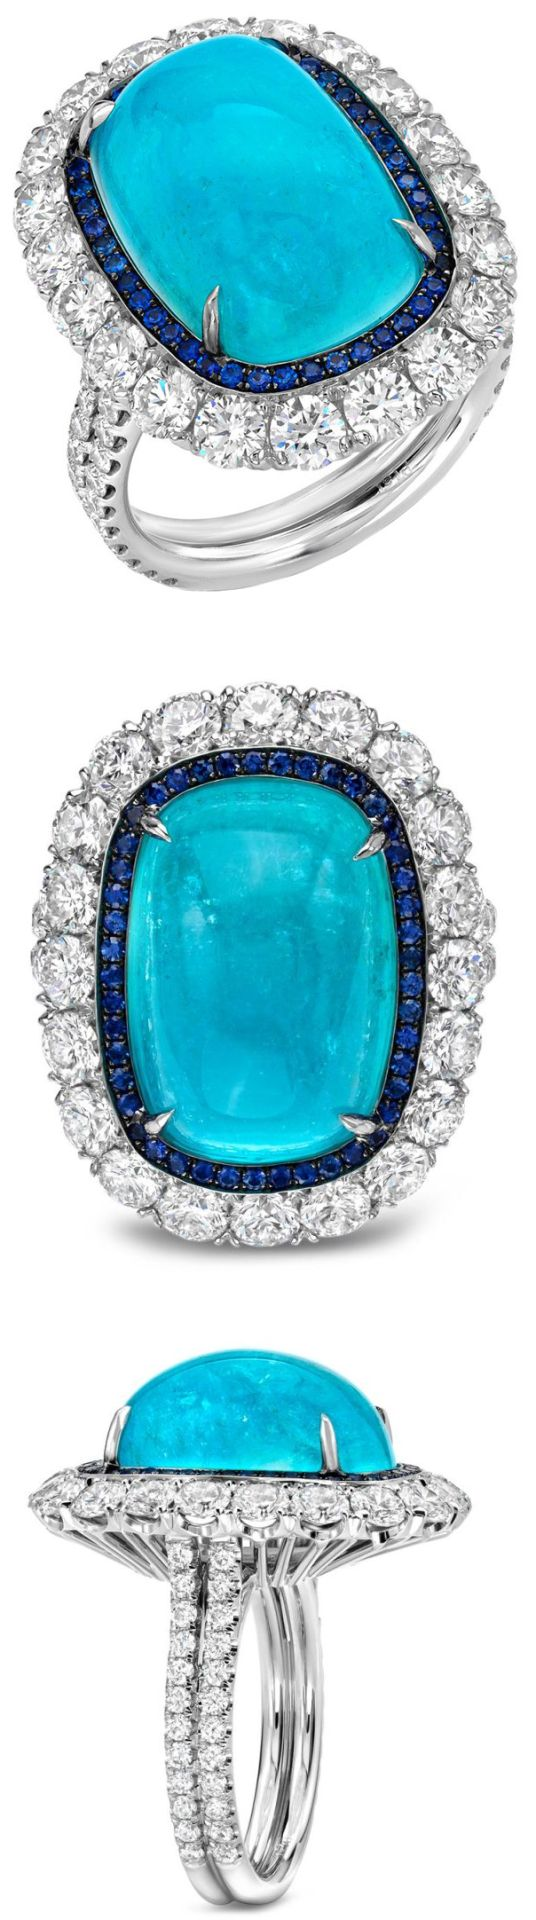 【Jewelry in My Box】Glorious Paraiba Tourmaline, Sapphire and Diamond Ring by Tamir Jewels | 1stdibs.com